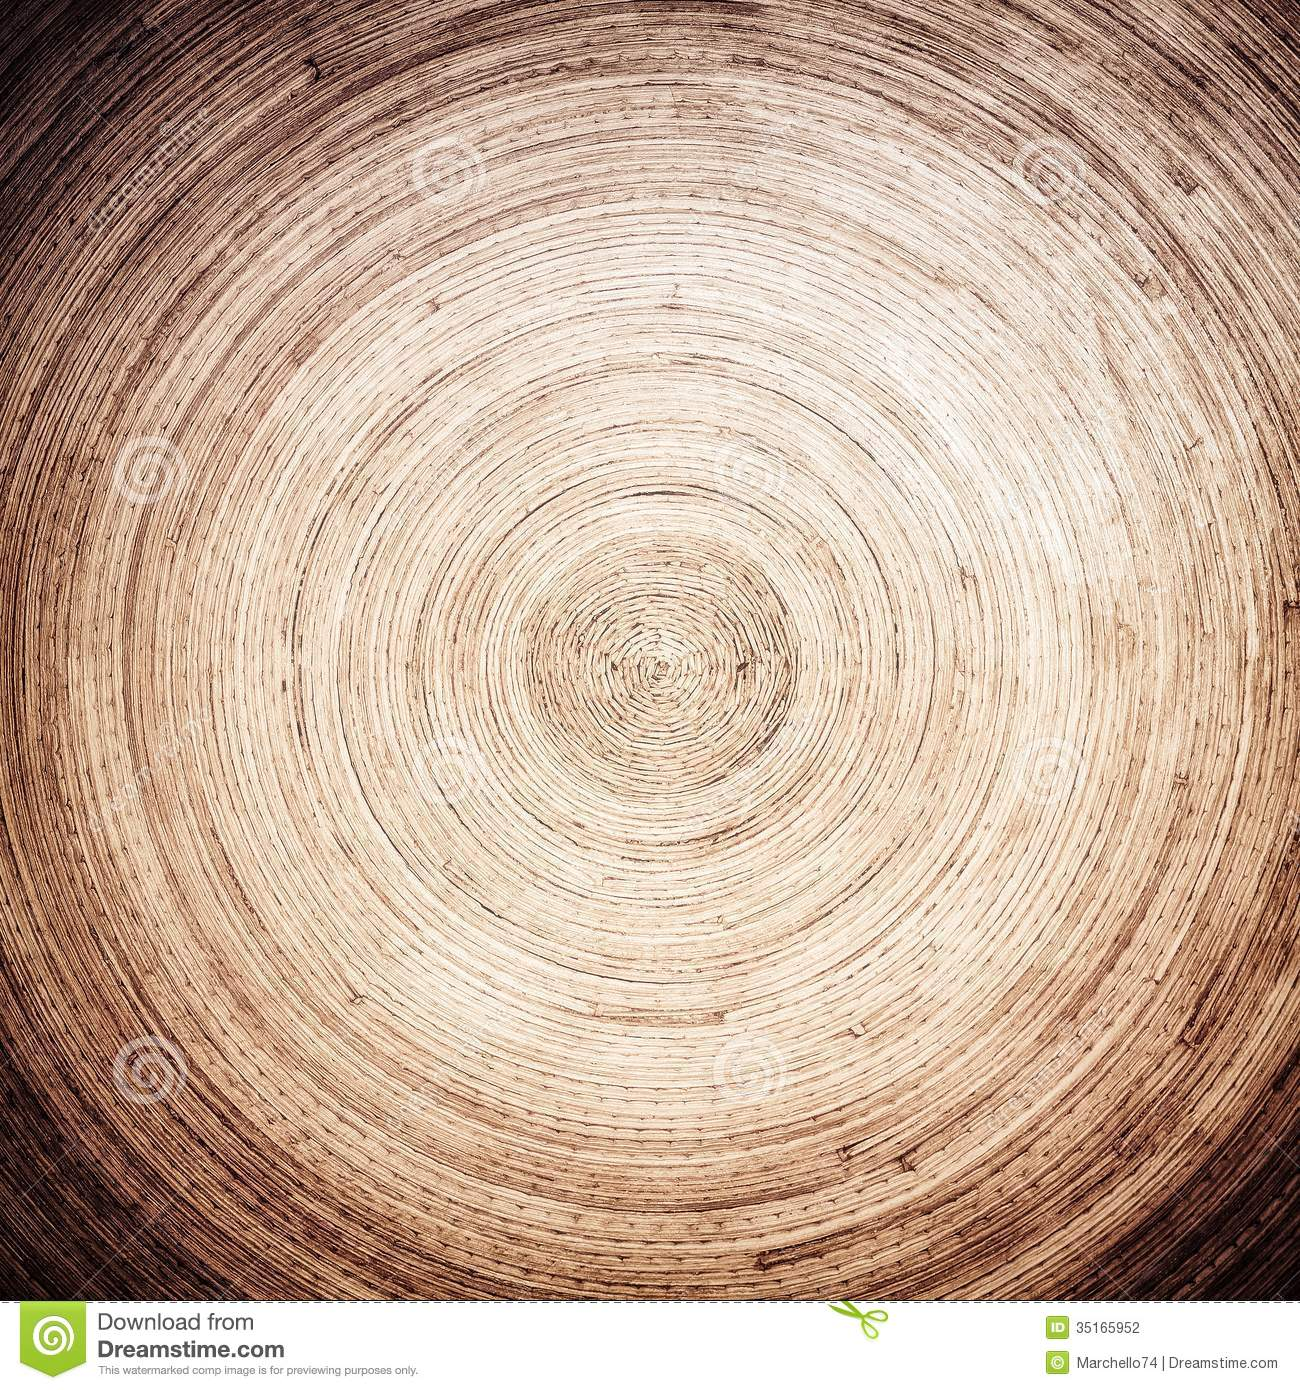 Stock Photography Bamboo Round Pattern As Wood Background Dark Vig te Image35165952 together with Gaf Shingles All America Cottage moreover Contemporary Kitchens 5089090368 moreover Diy Advent Wreath Ideas Christmas Decor also Patterned Carpet The Dos Donts. on traditional home design color